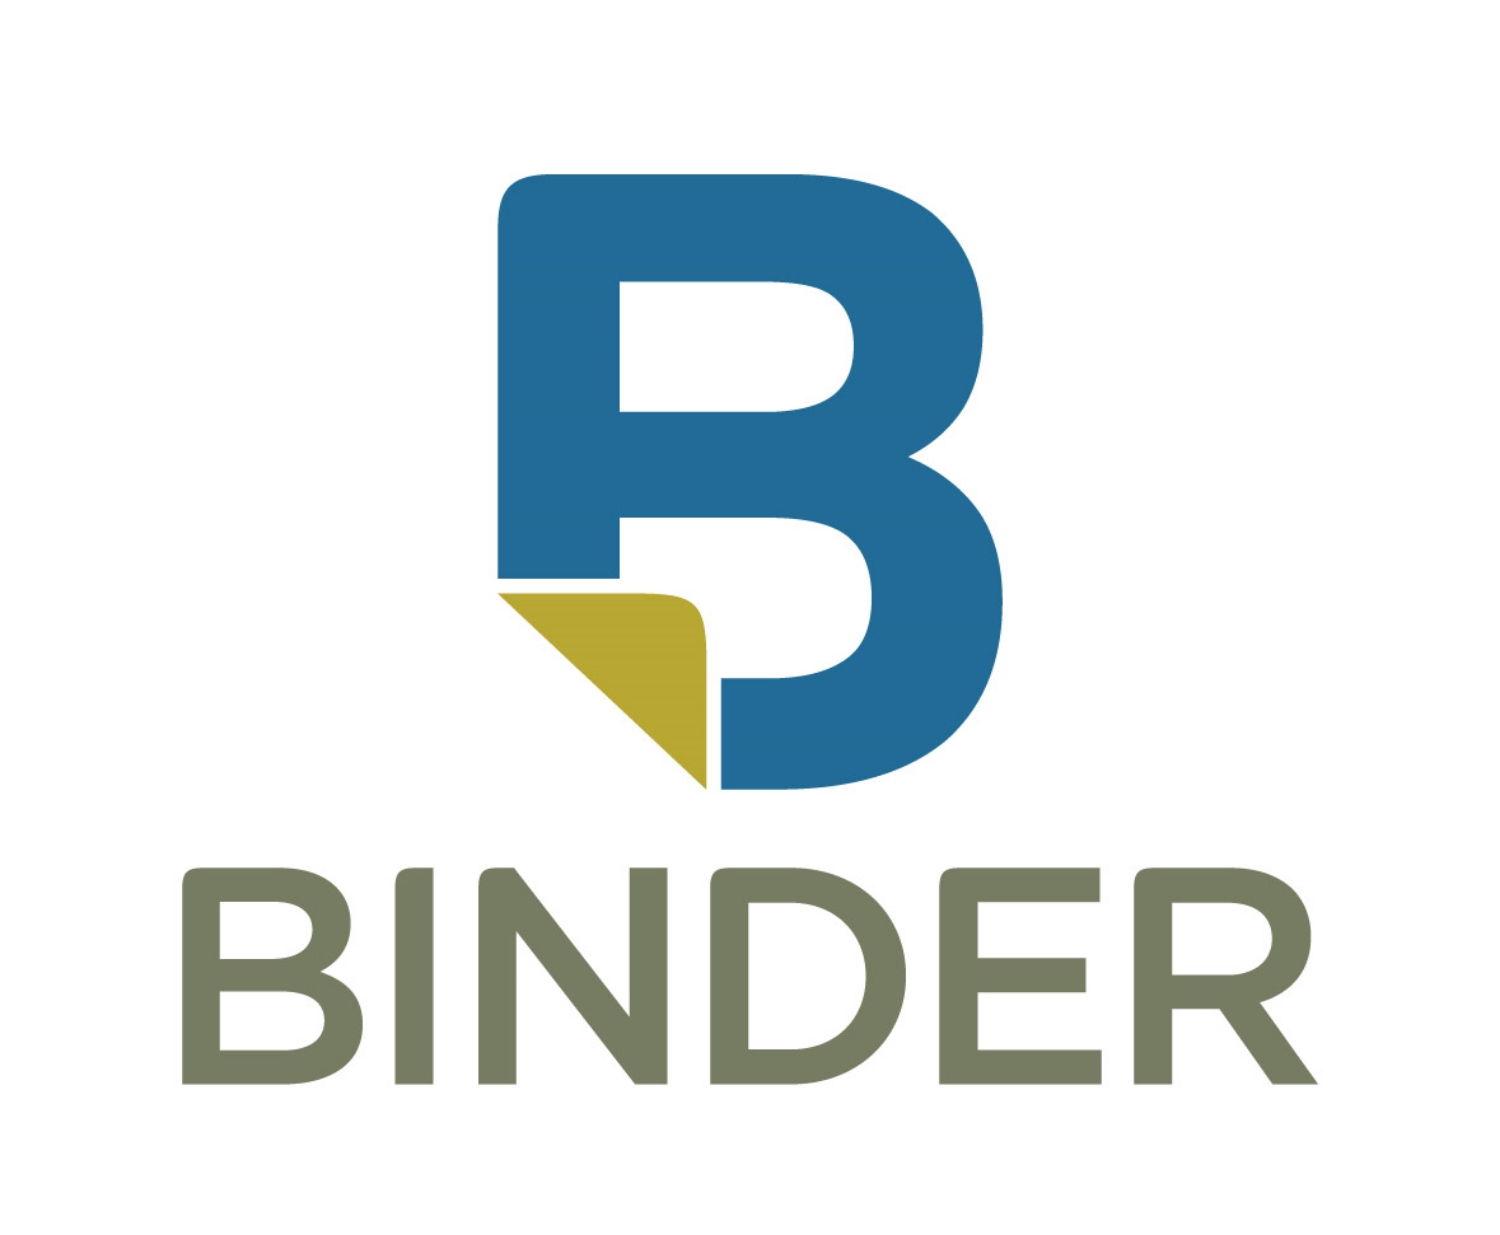 The Binder Project